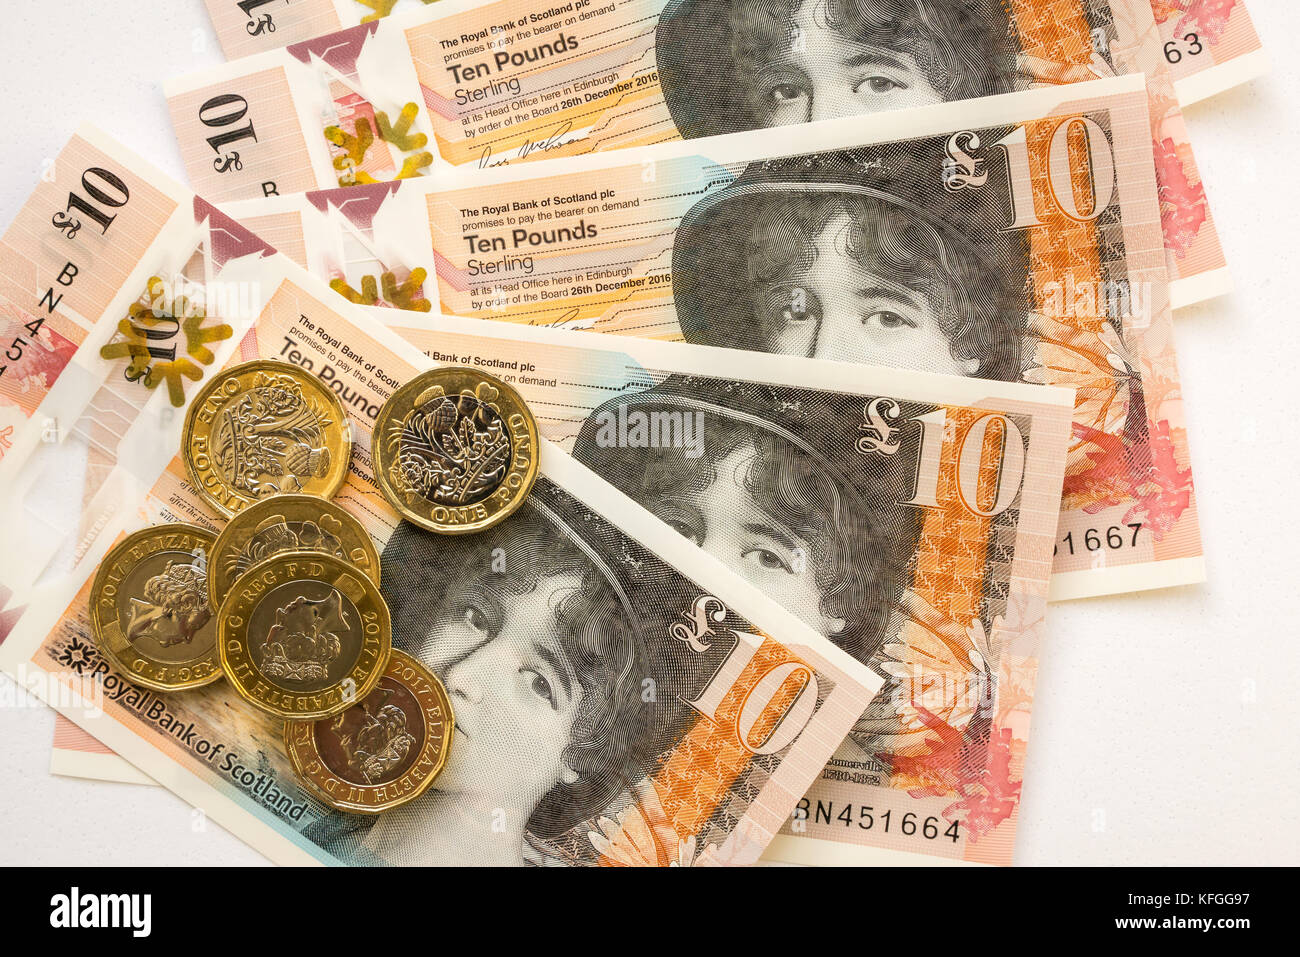 Close up of Royal Bank of Scotland new plastic polymer ten pounds £10 banknote and new hexagonal one pound £1 coins Stock Photo